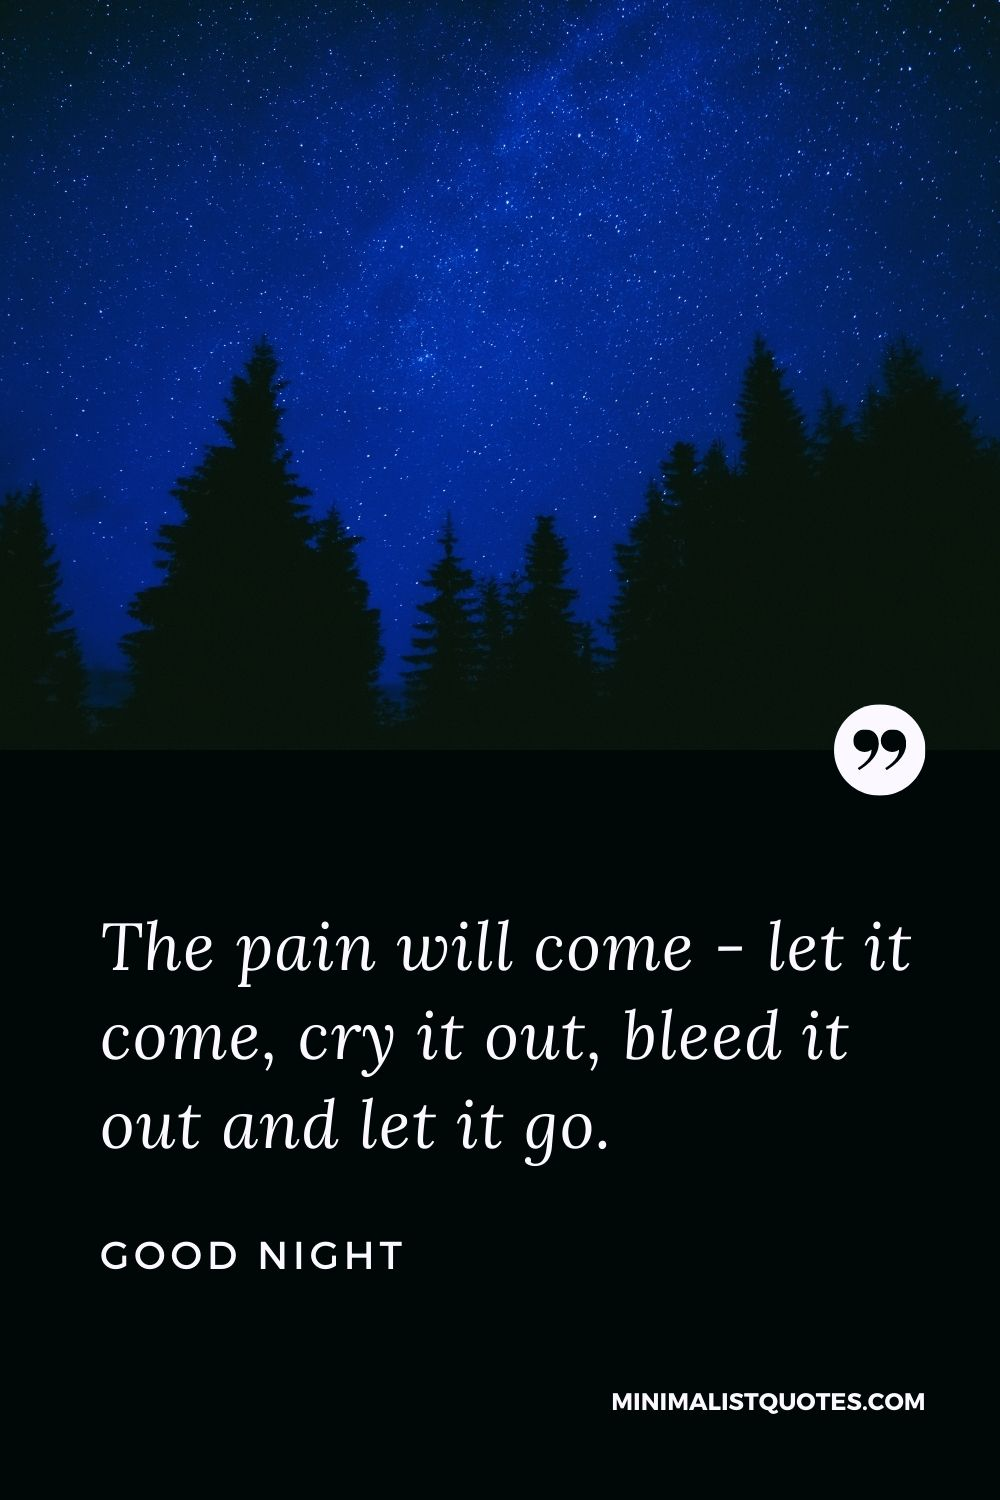 Good Night Wishes - The pain will come - let it come, cry it out, bleed it out and let it go.